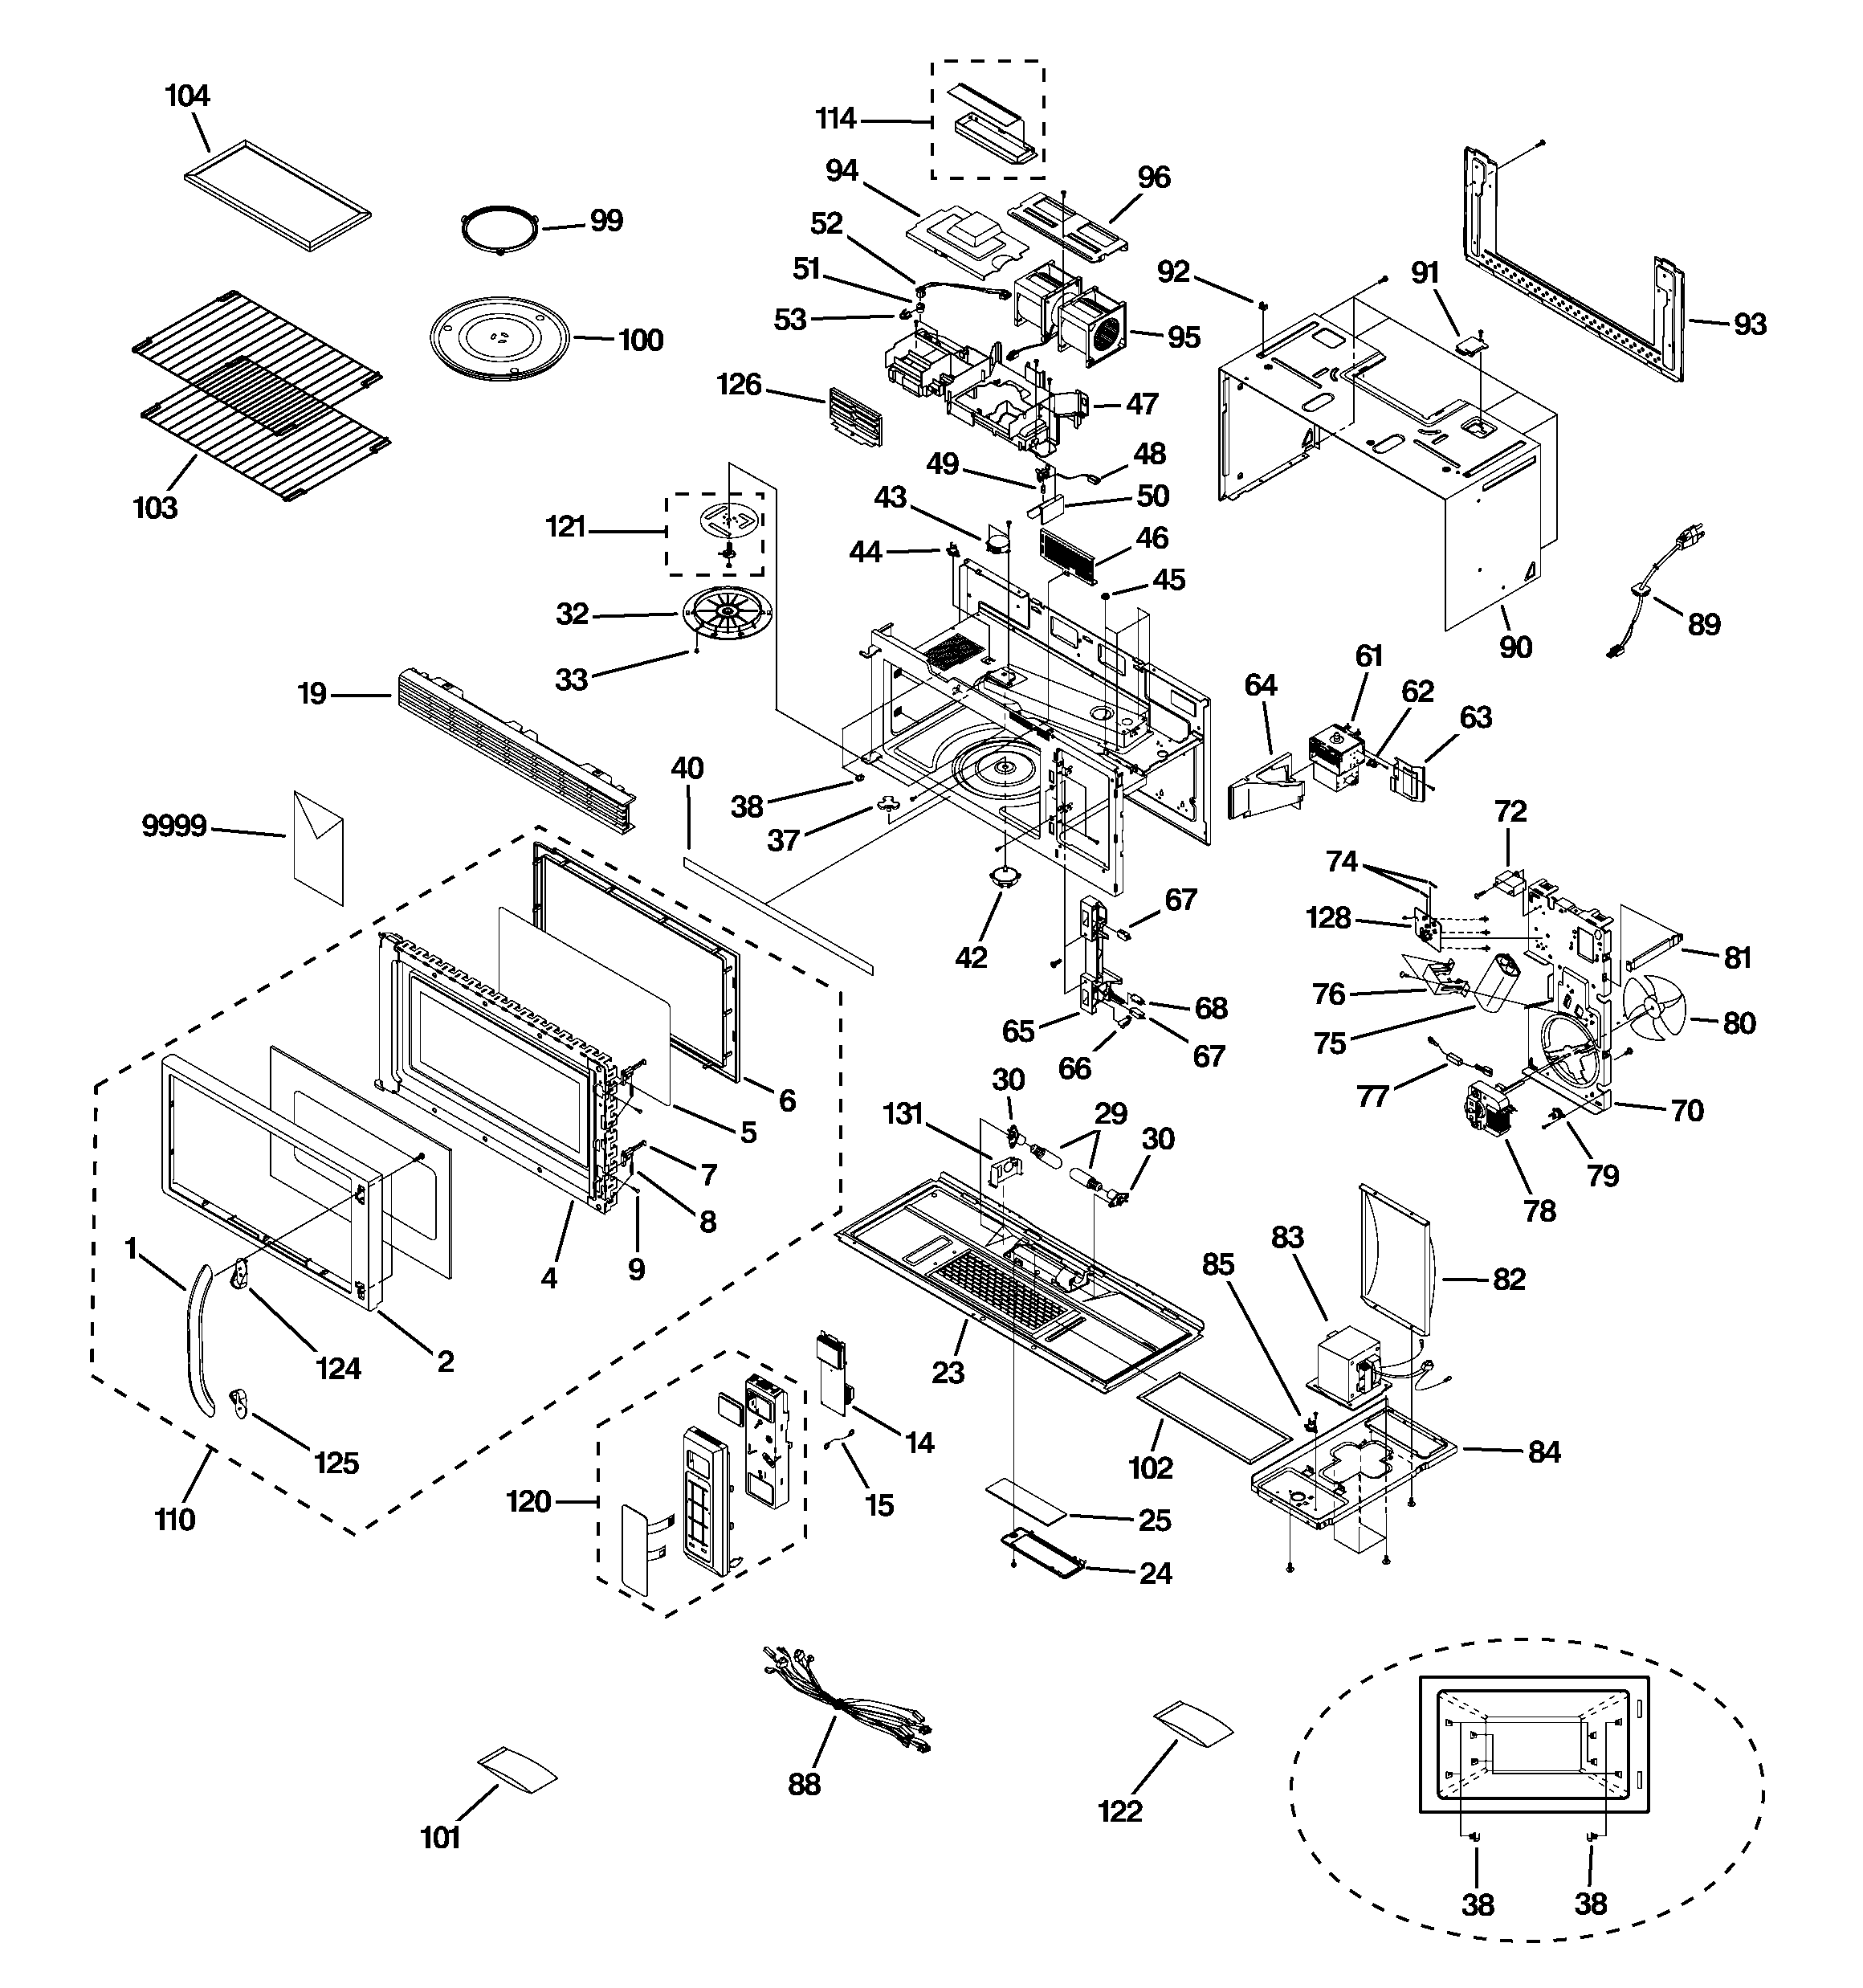 G0604228 00001?resize\\\\\\\\\\\\\\\\\\\\\\\\\\\\\\\=665%2C709 wiring diagram for range hood fan nautilus range hood wiring  at arjmand.co